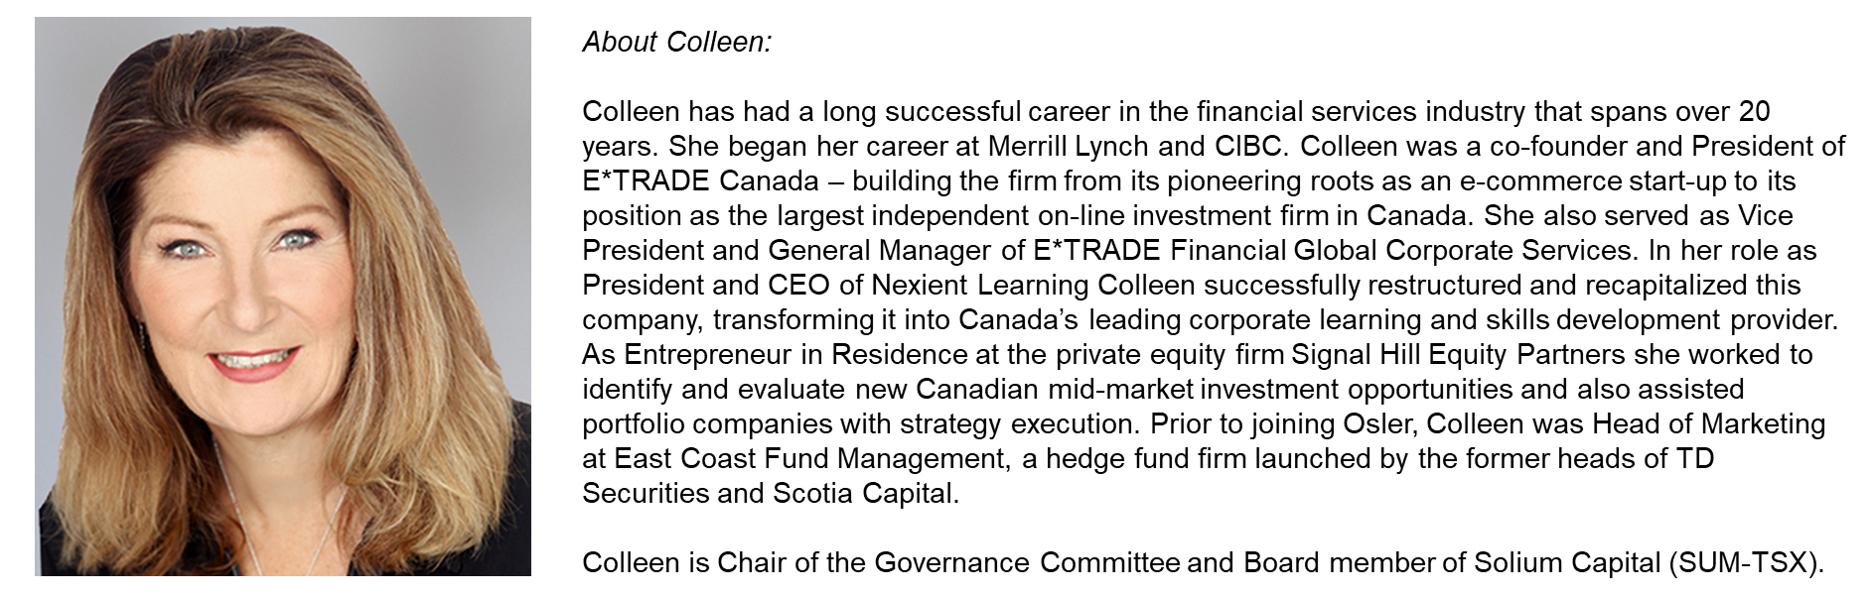 Colleen Moorehead Bio